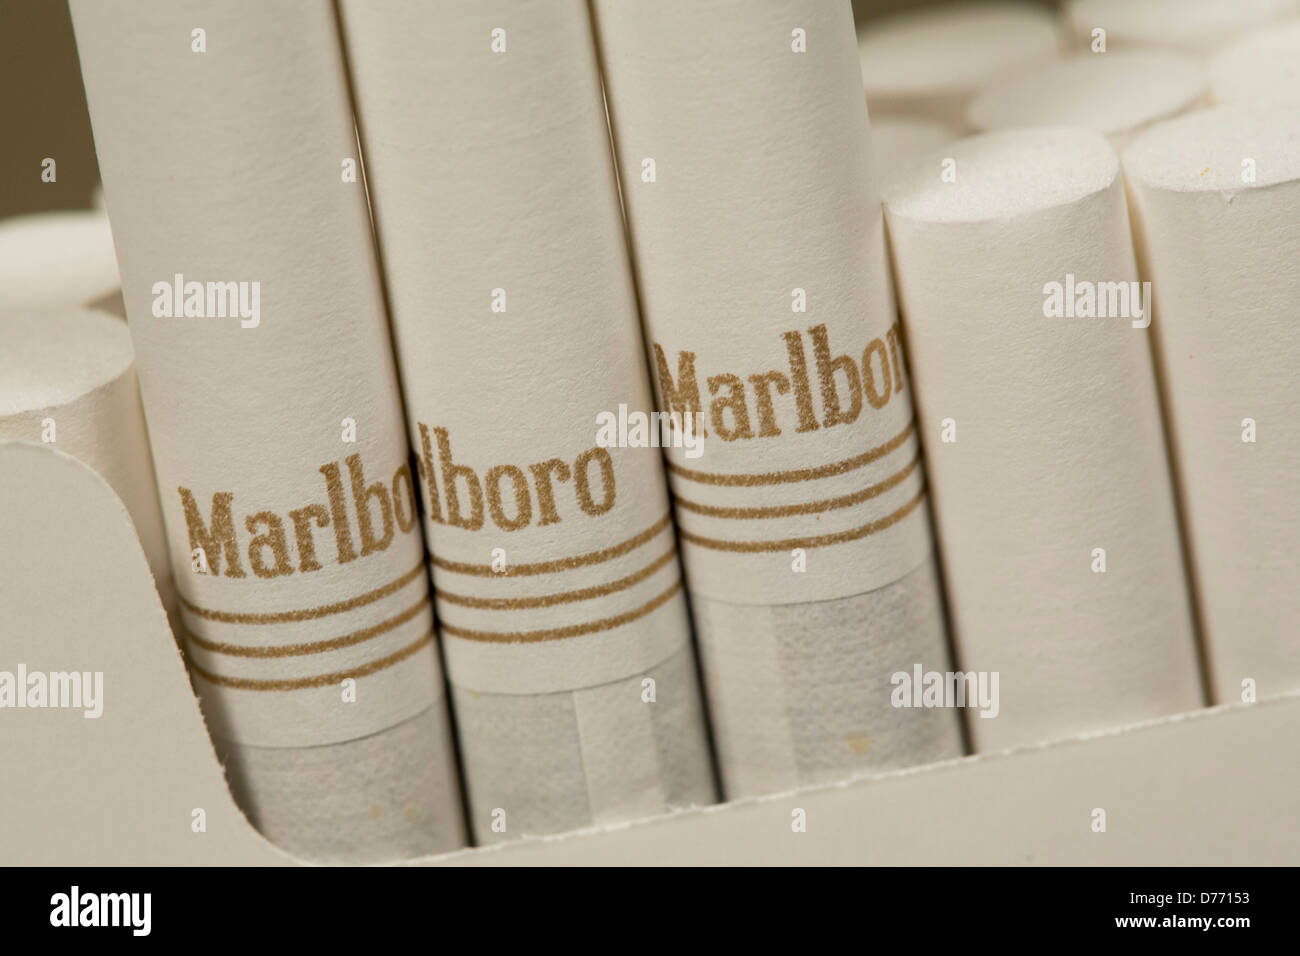 Box cigarettes Marlboro Liverpool